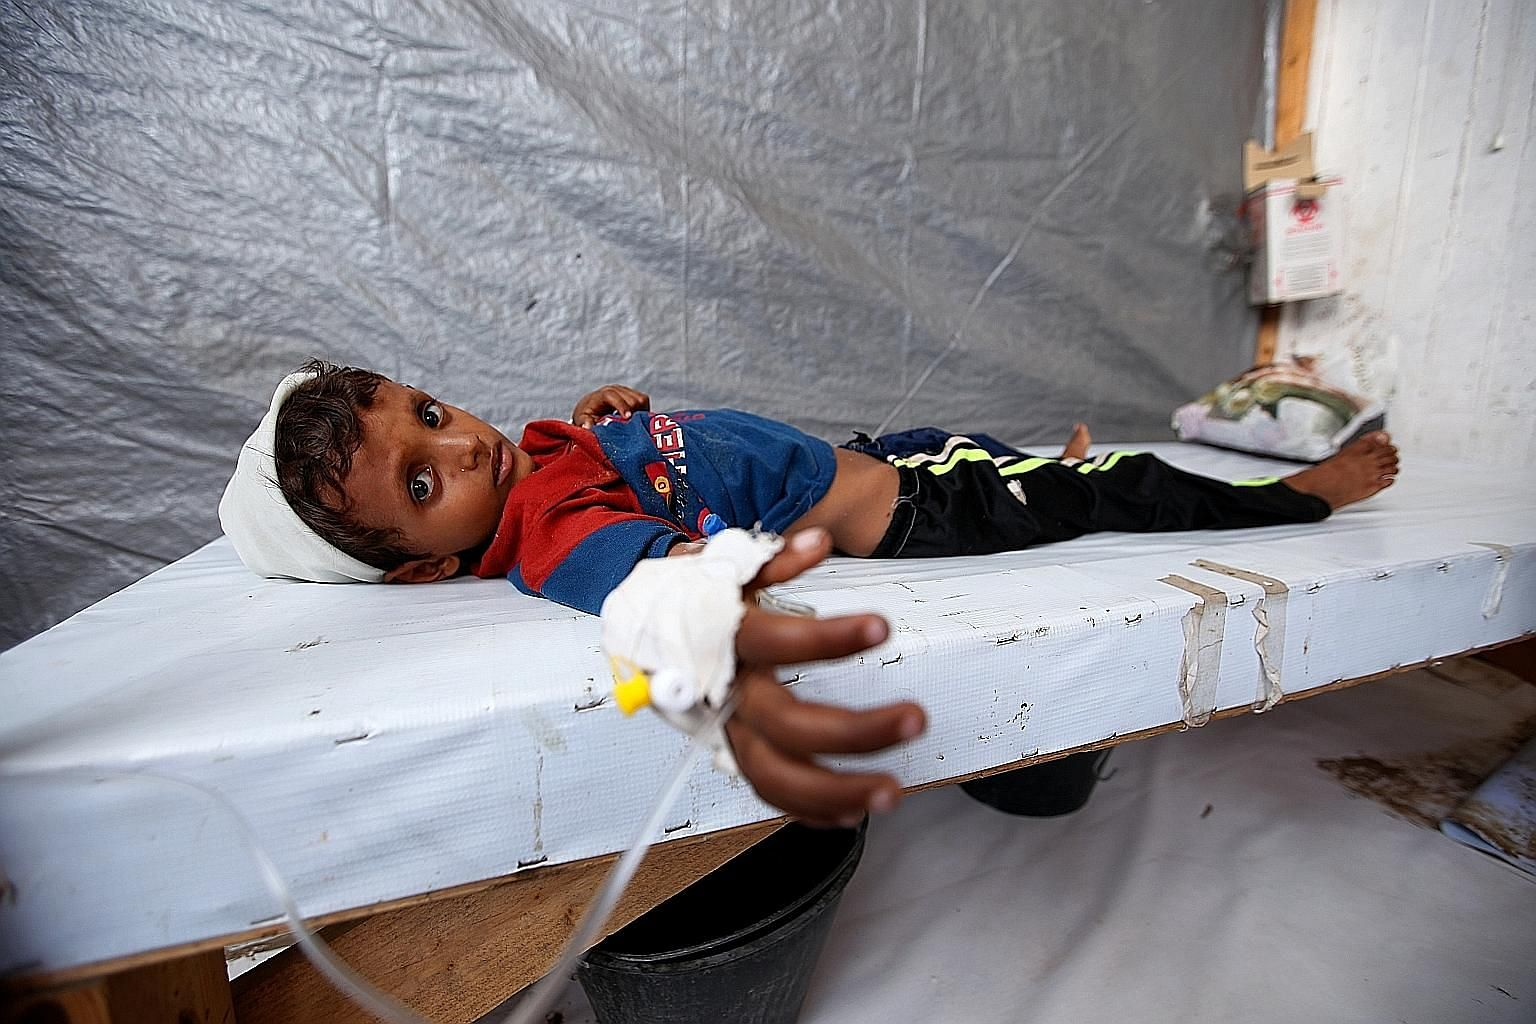 Cholera-stricken Siddique Nuruddin Ali, seven, at a treatment centre in the Red Sea port city of Hodeidah last Sunday. The cholera outbreak in war-torn Yemen is the largest single-year cholera outbreak on record, United Nations spokesman Stephane Duj